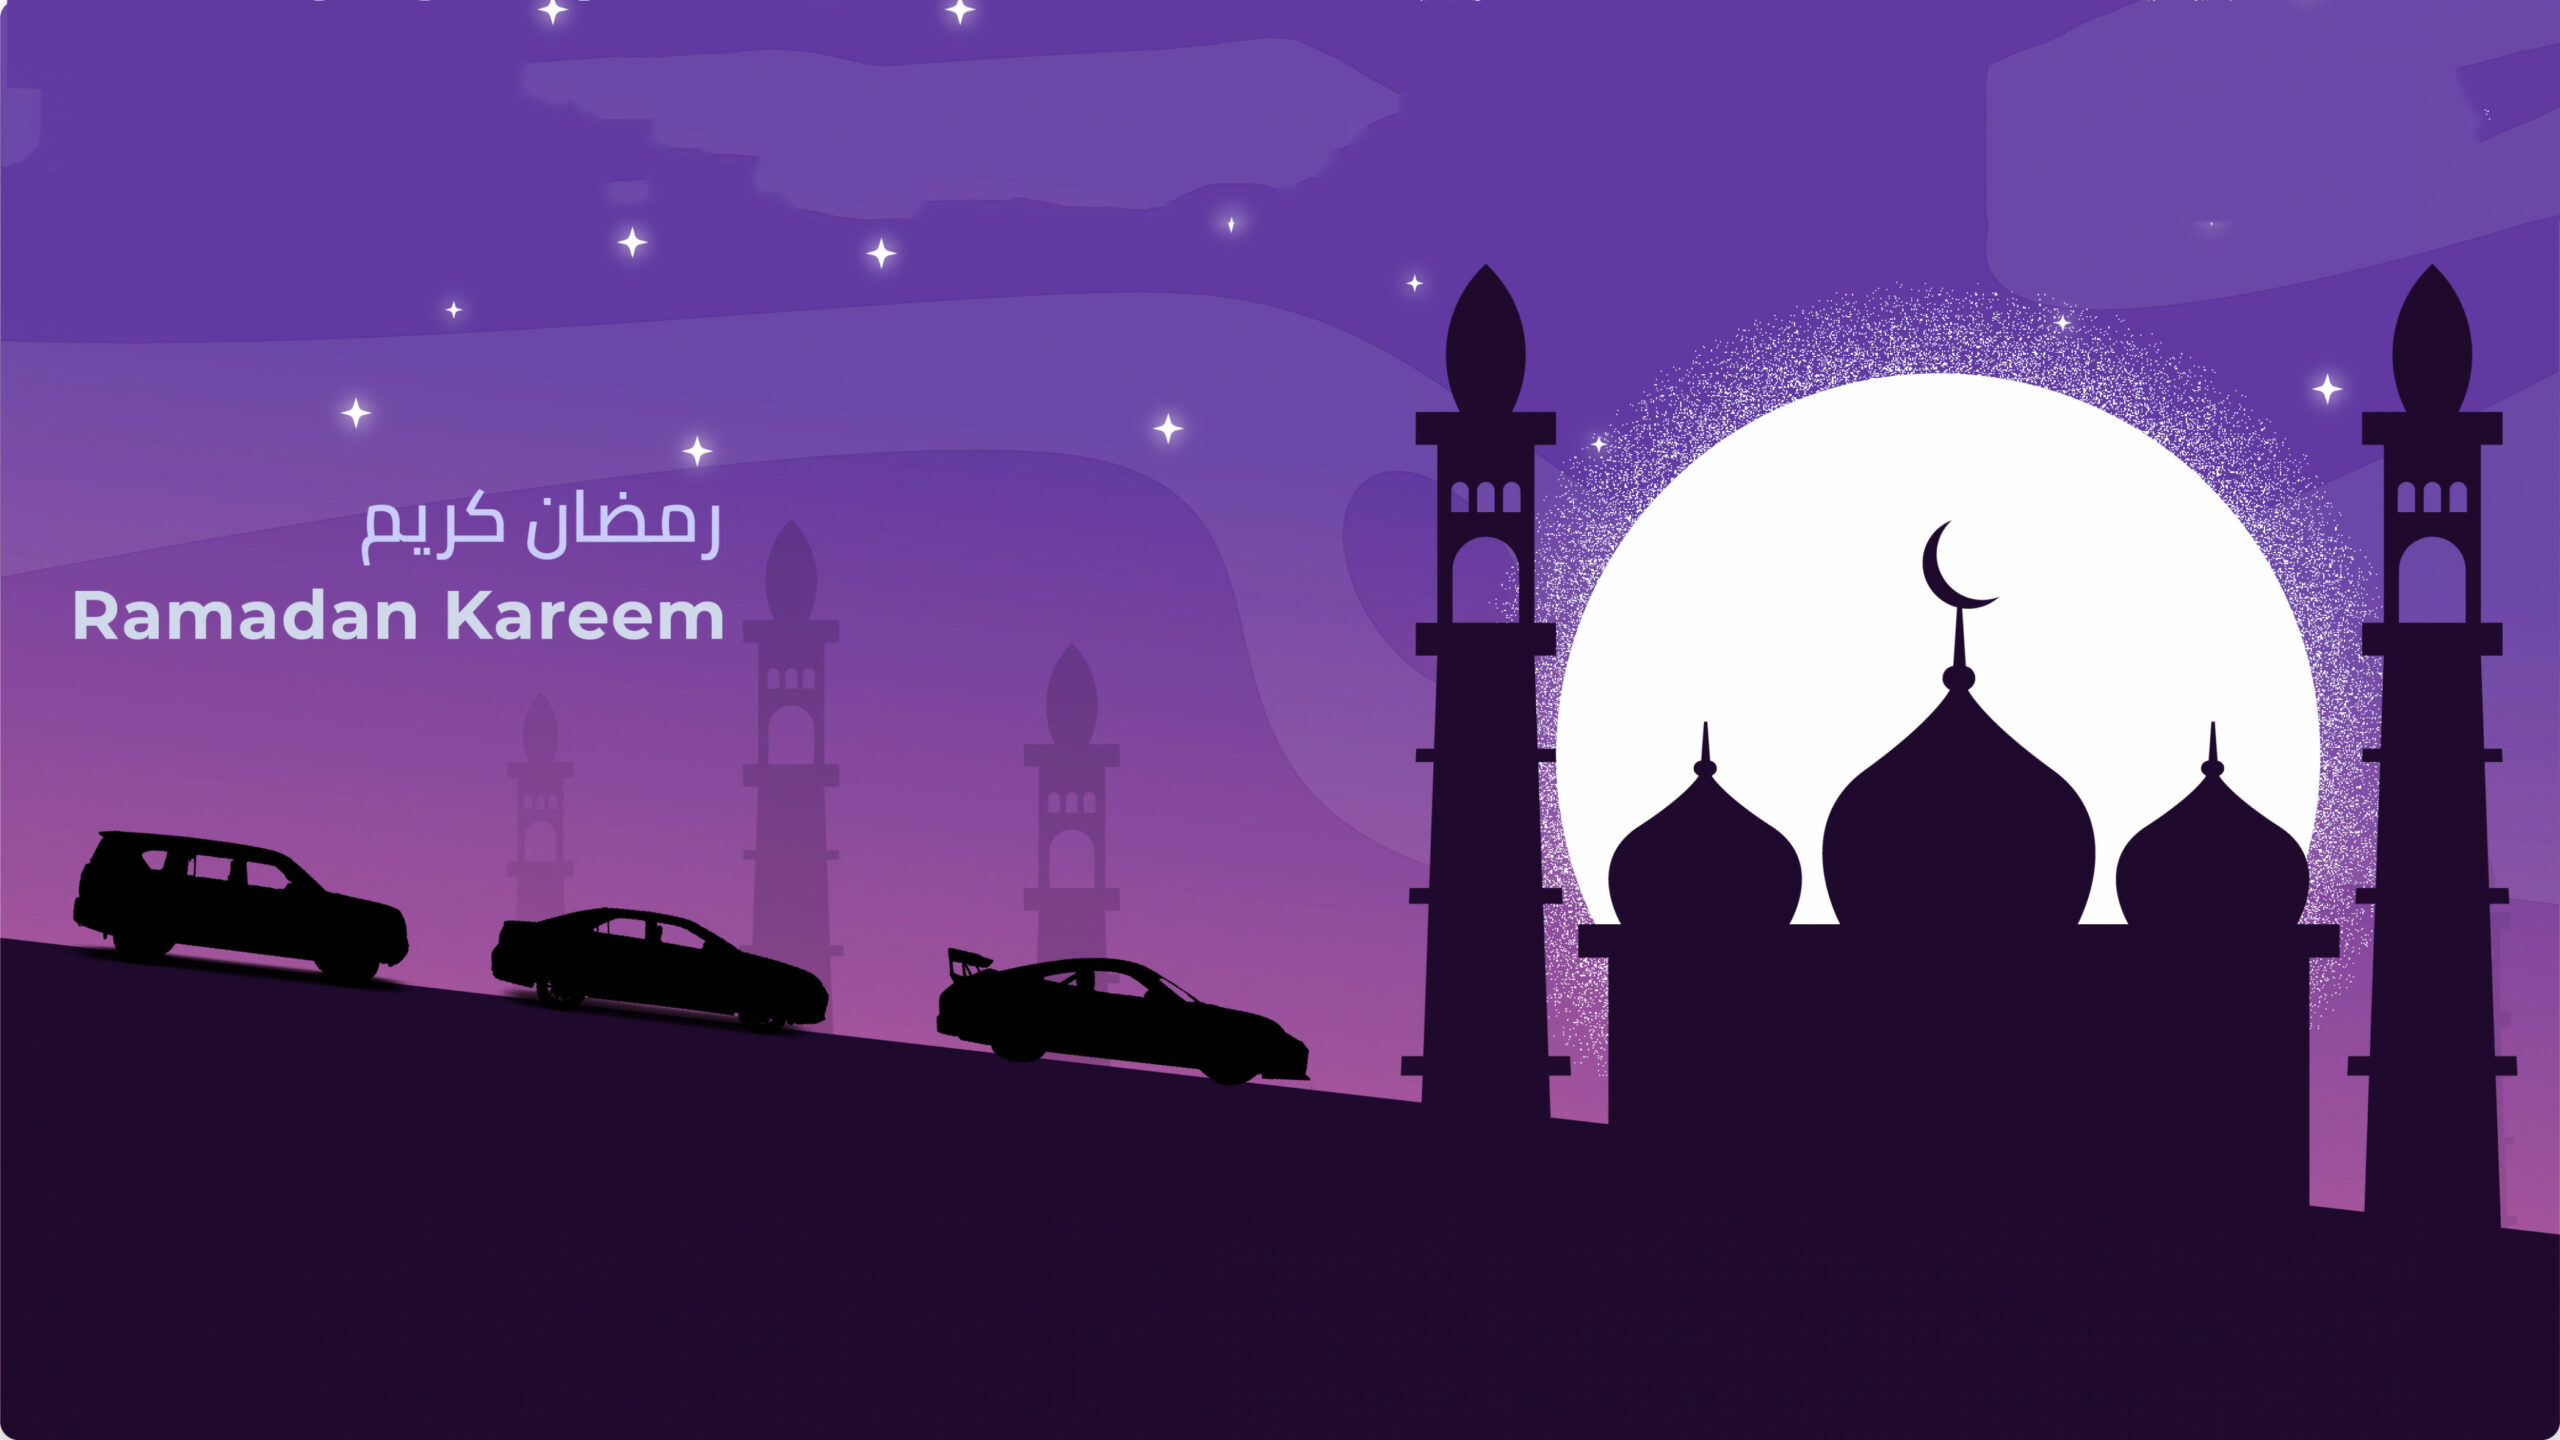 Ramadan Car Offers Dubai 7 - Dubai, Abu Dhabi, UAE